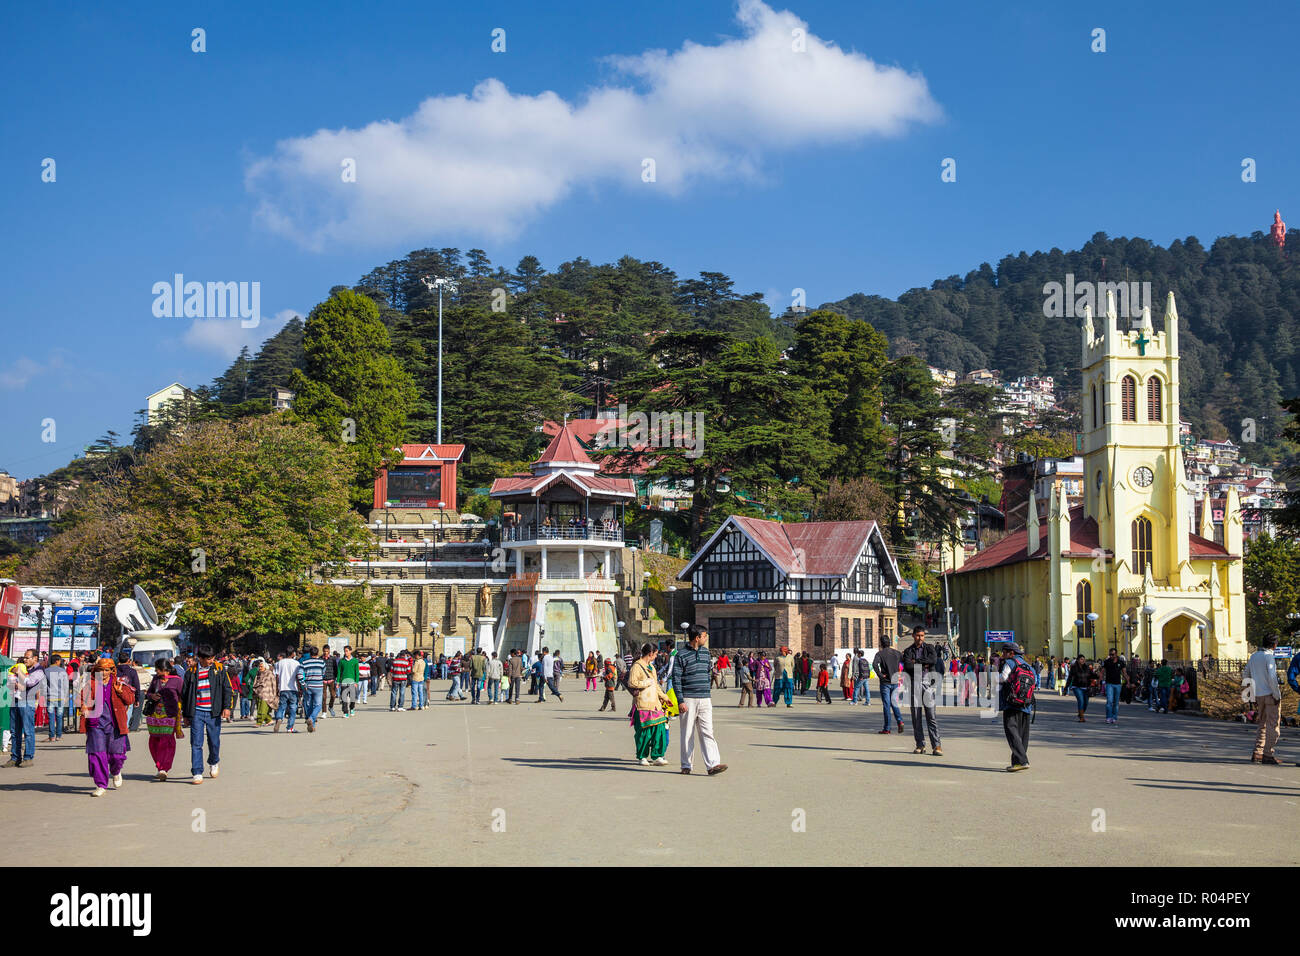 Christ Church, The Ridge, Shimla (Simla), Himachal Pradesh, India, Asia - Stock Image